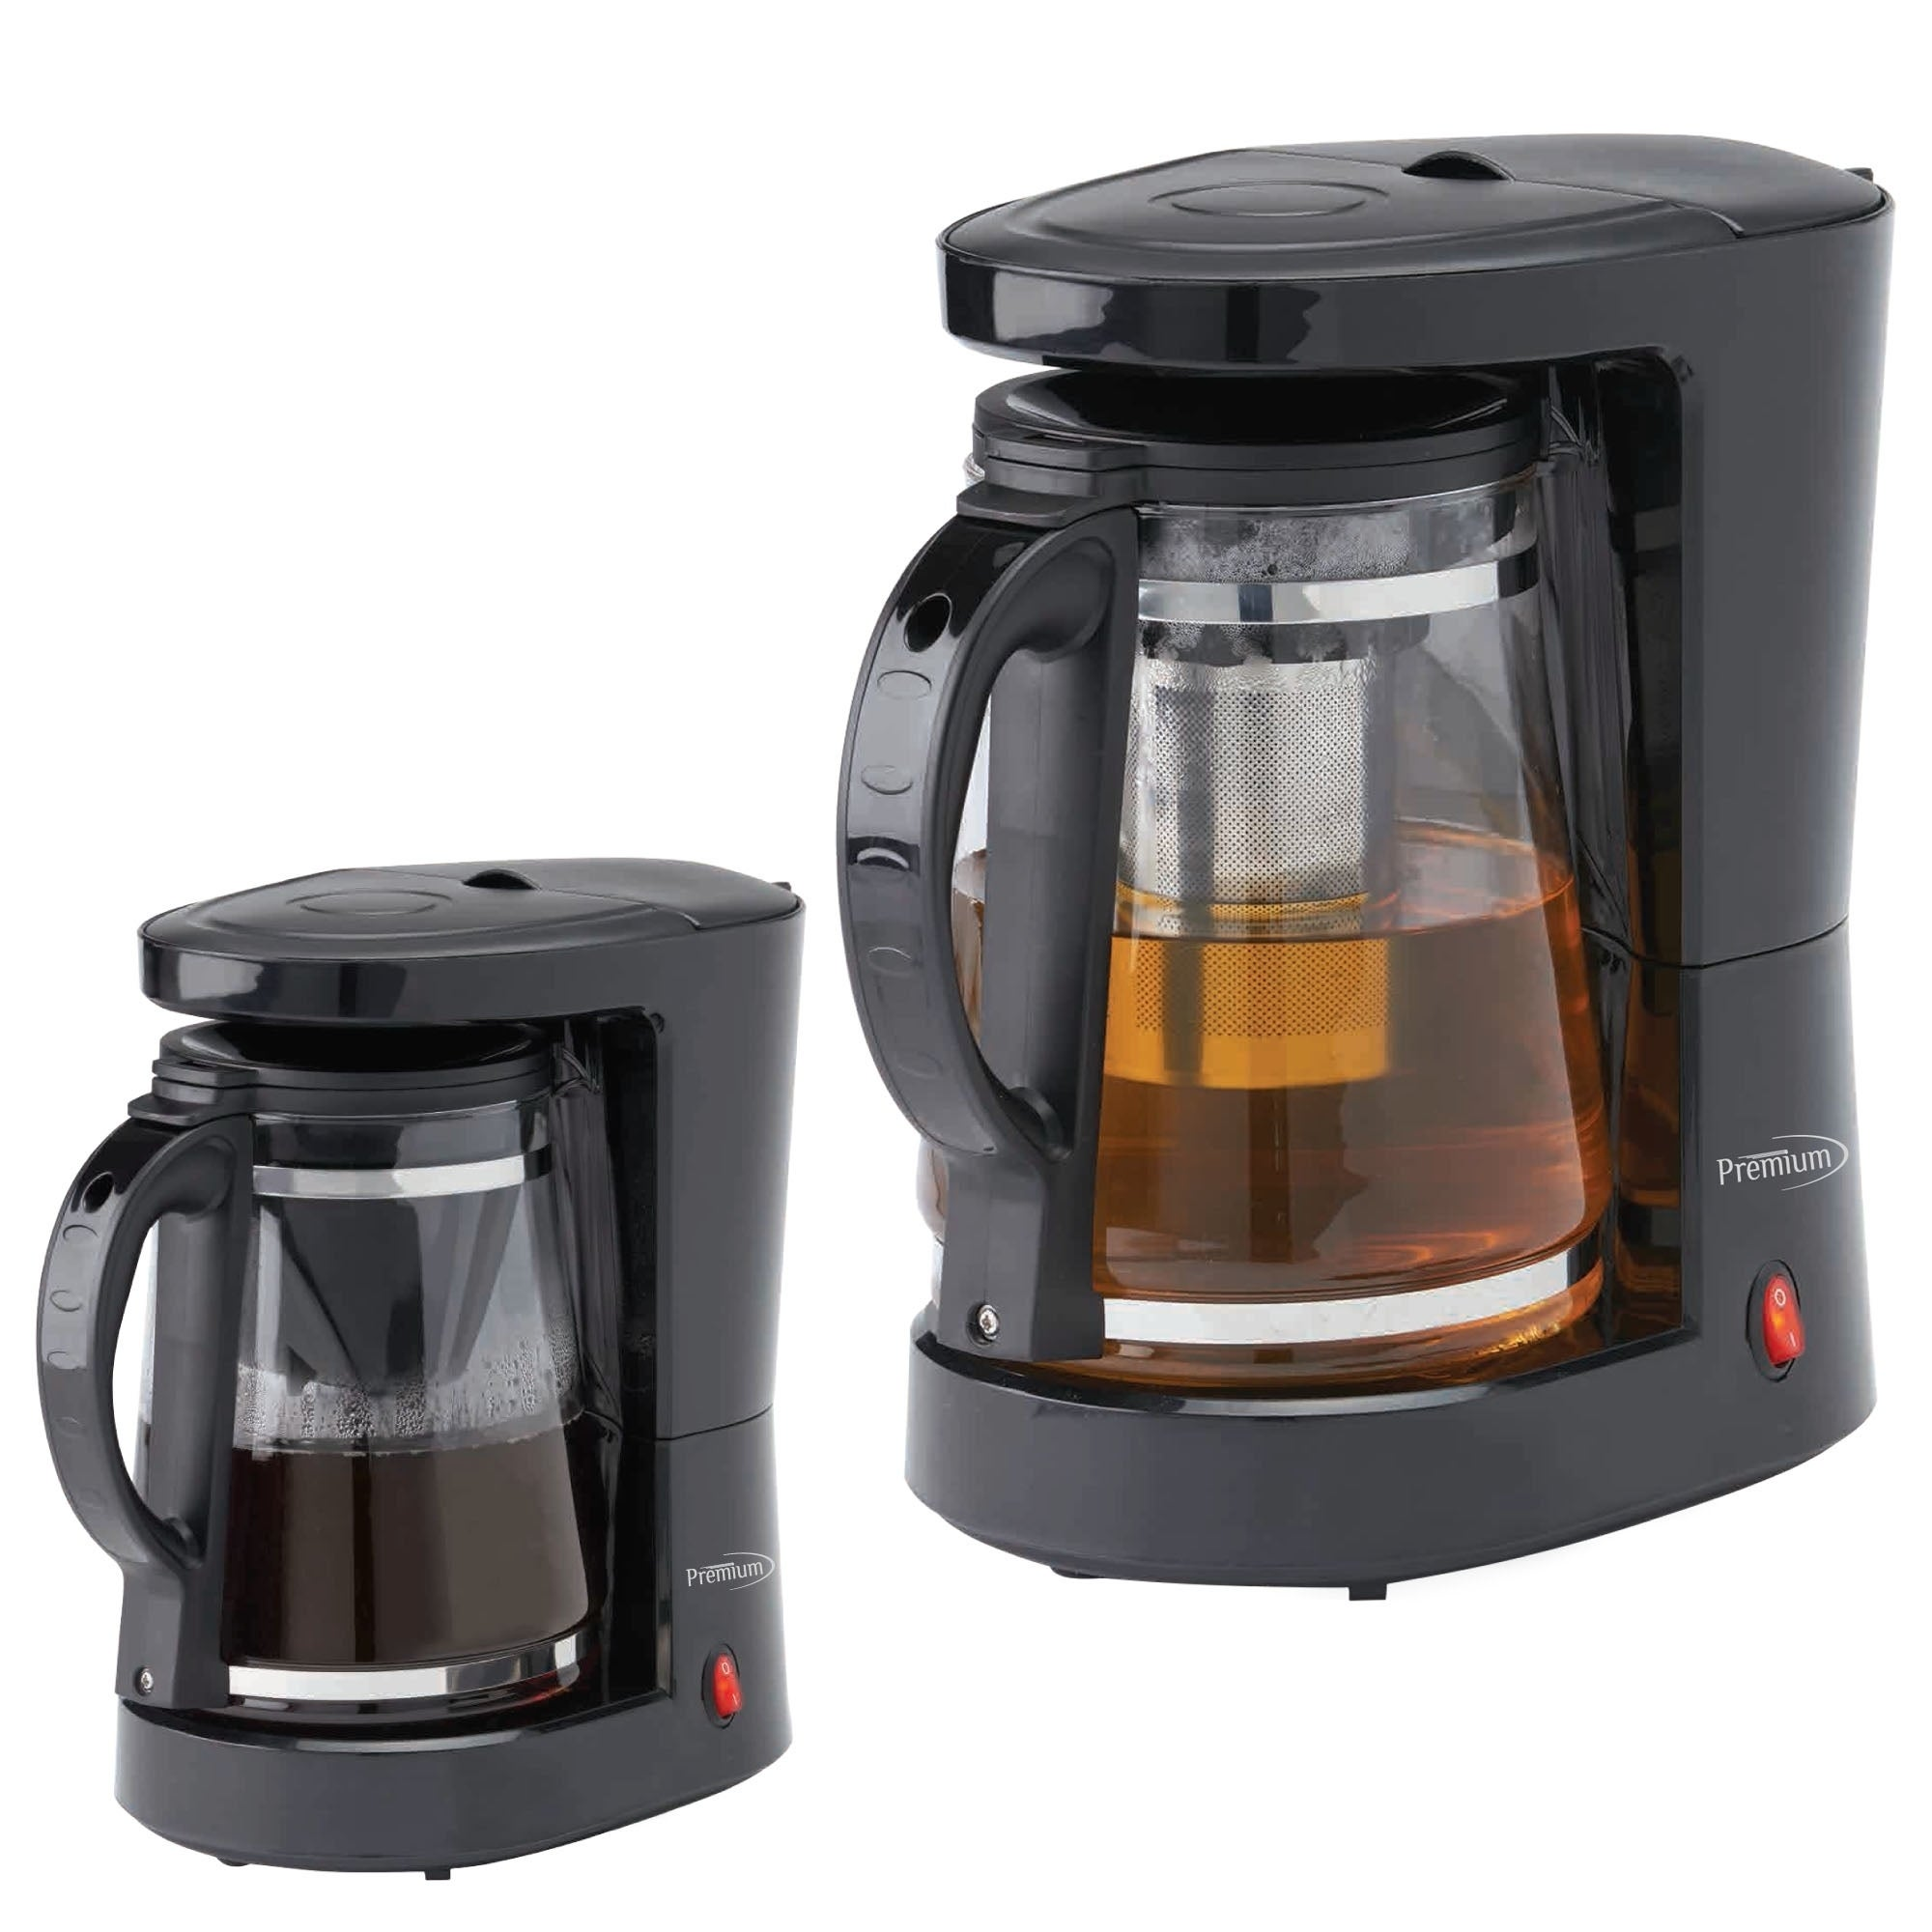 Premium Coffee and Tea Maker with Hot Water Dispenser, Black